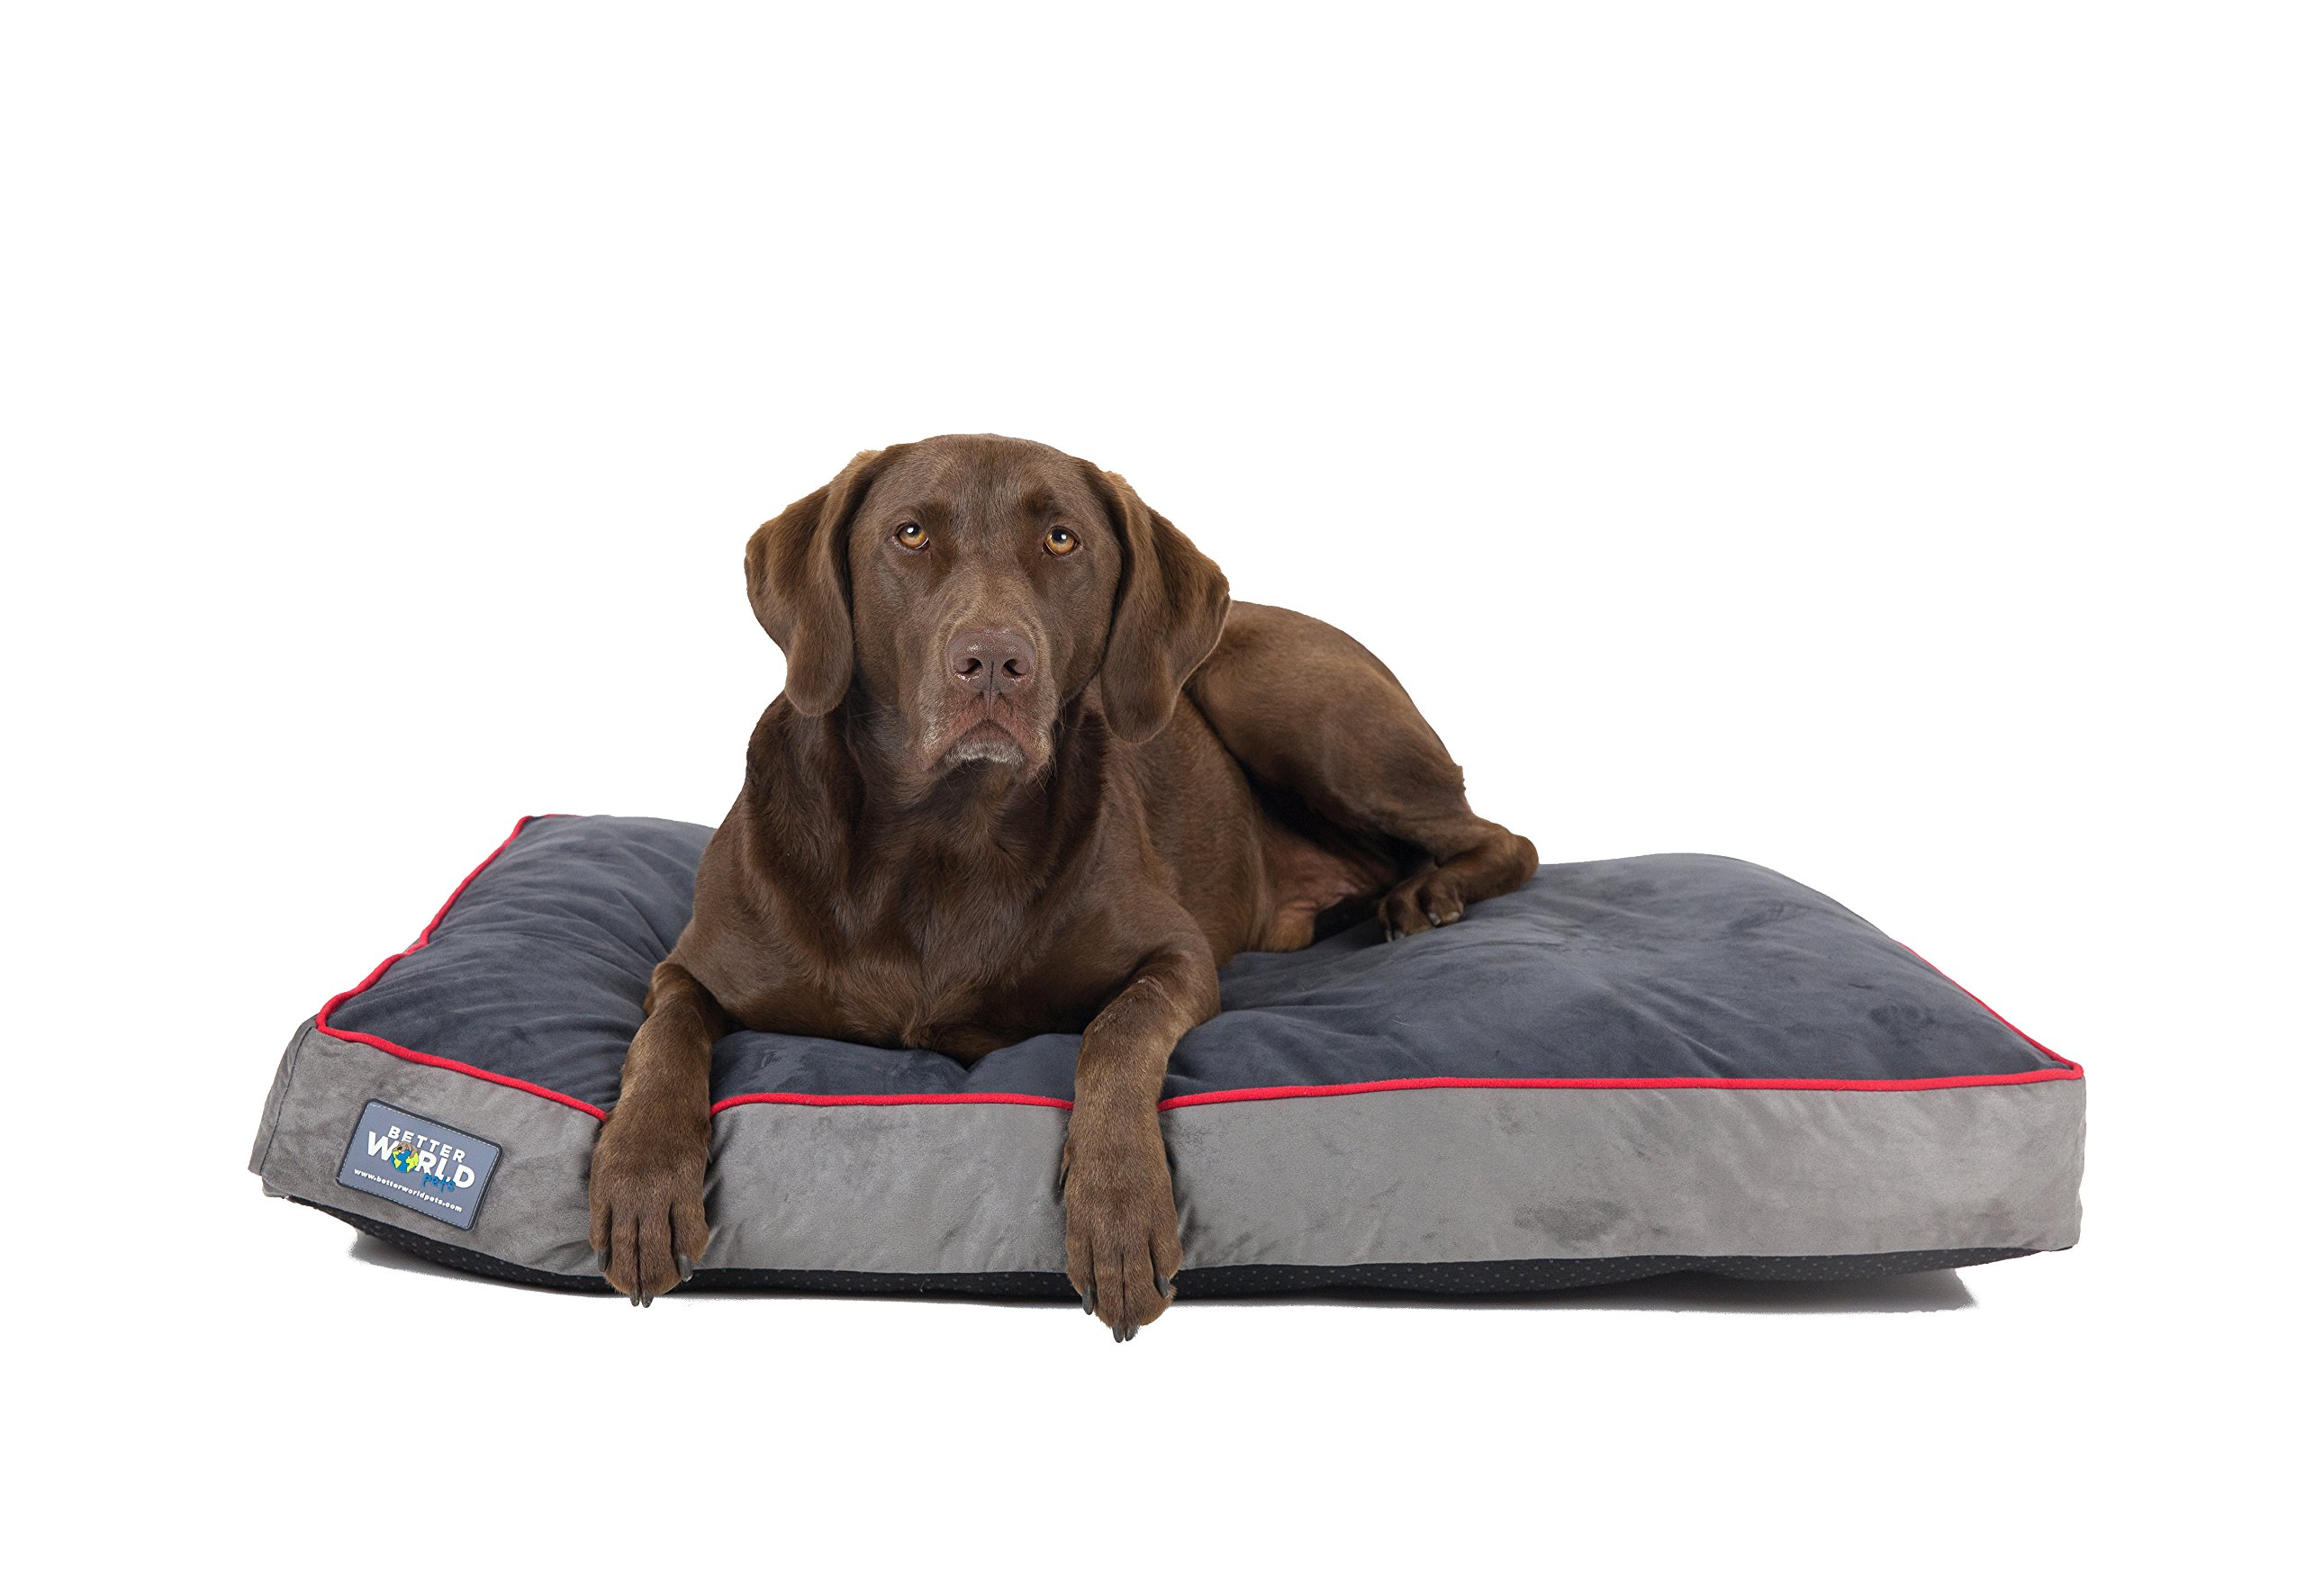 Better World Pets 5-Inch Thick Waterproof Orthopedic Memory Foam Dog Bed with 180 GSM Removable Washable Cover (Large, Grey with Spanish Red trim)